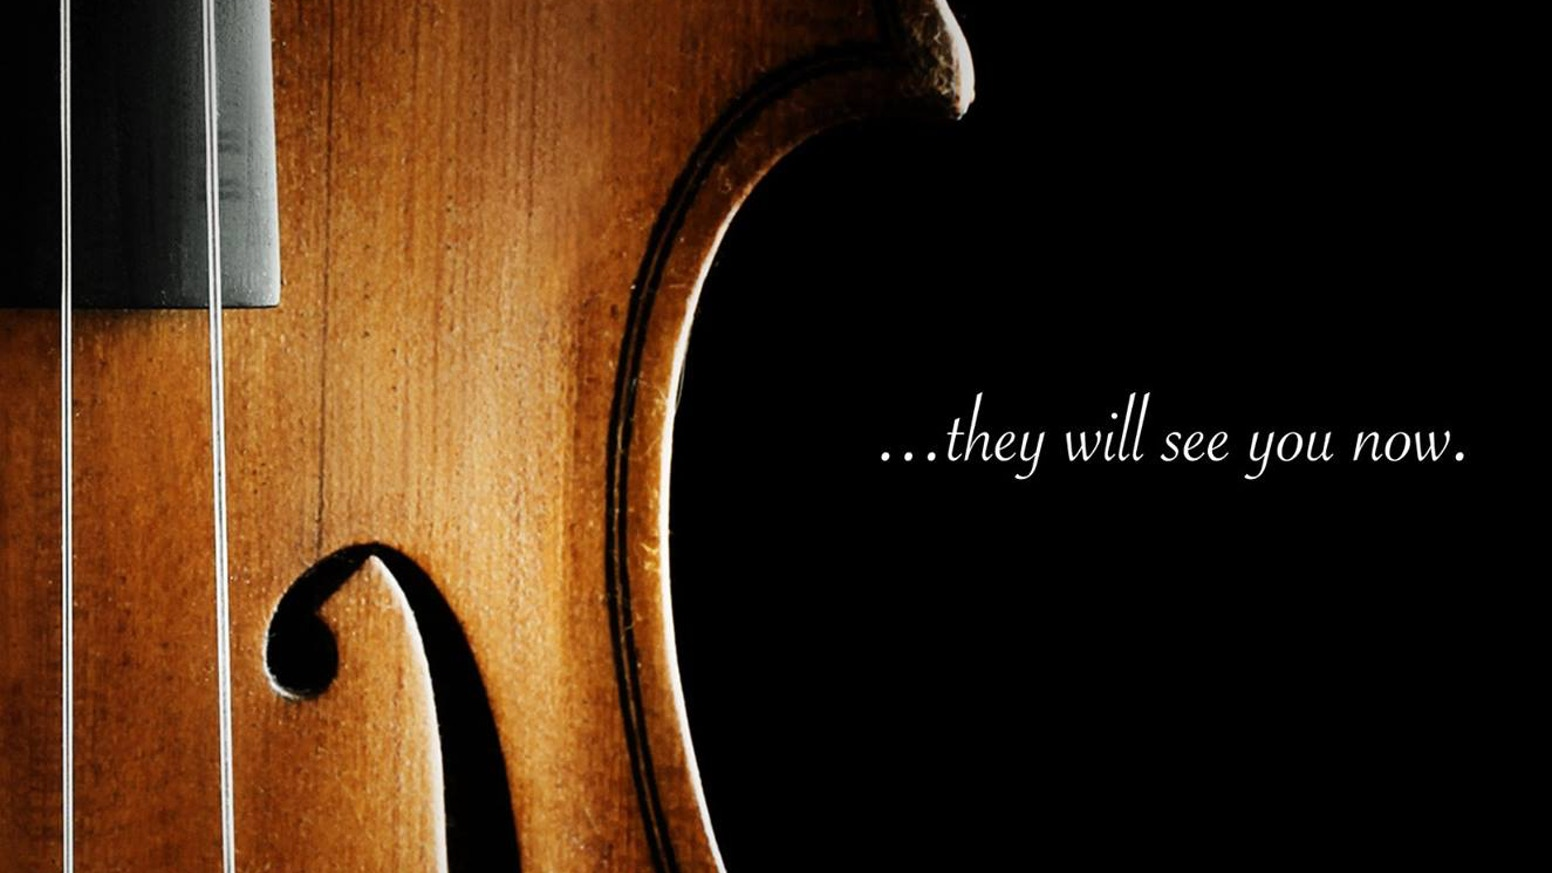 Stellan, a struggling violinist, lands an audition with a popular string quartet. But not all is as it seems...